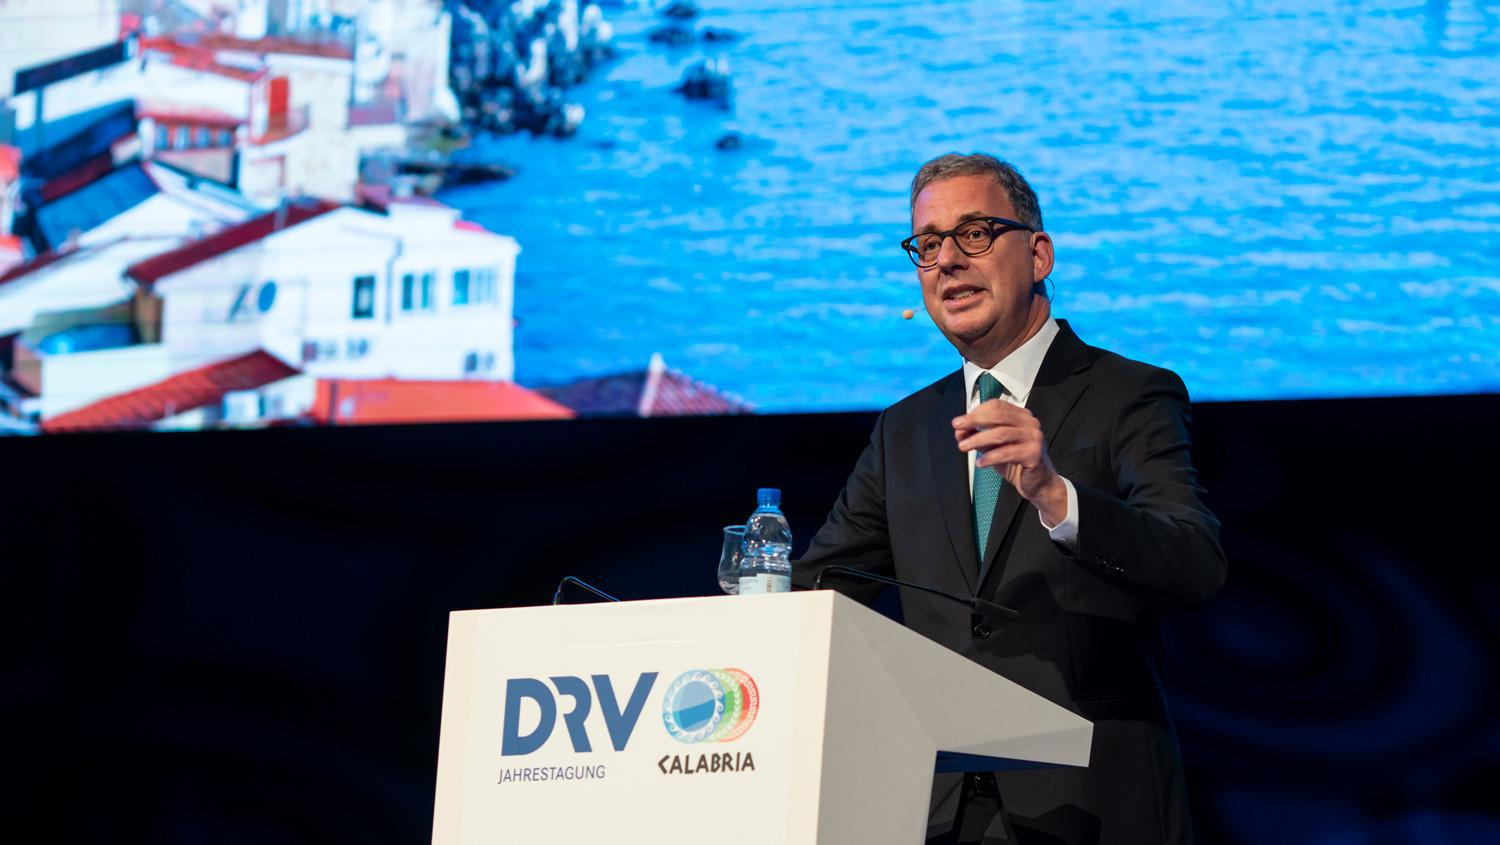 Norbert Fiebig addresses the DRV conference in Calabria